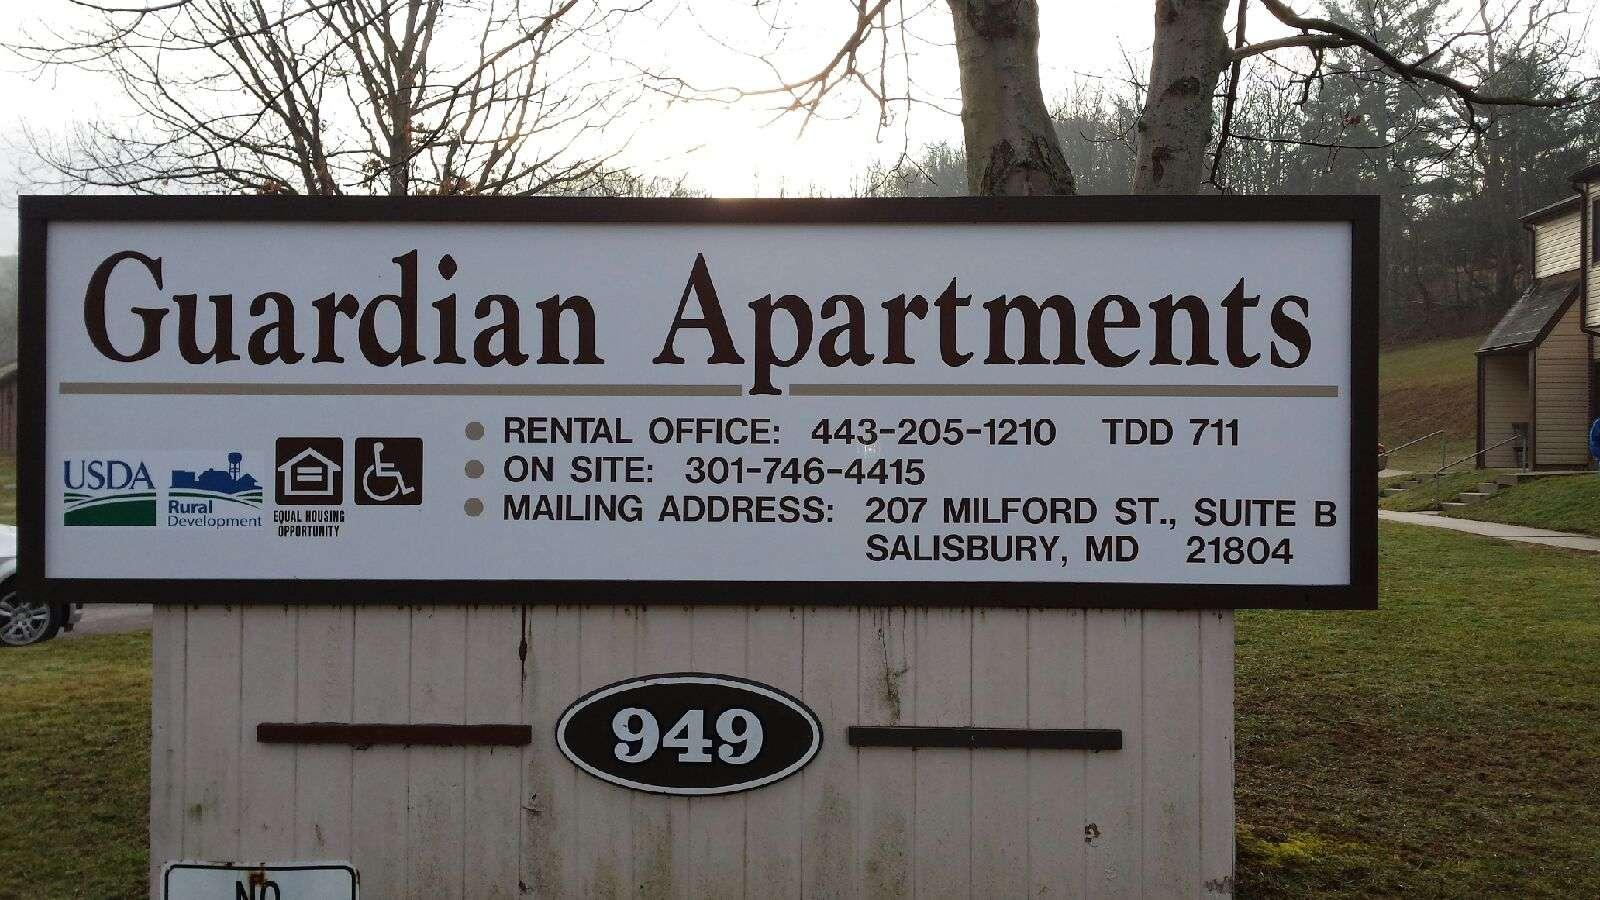 Guardian Apartments